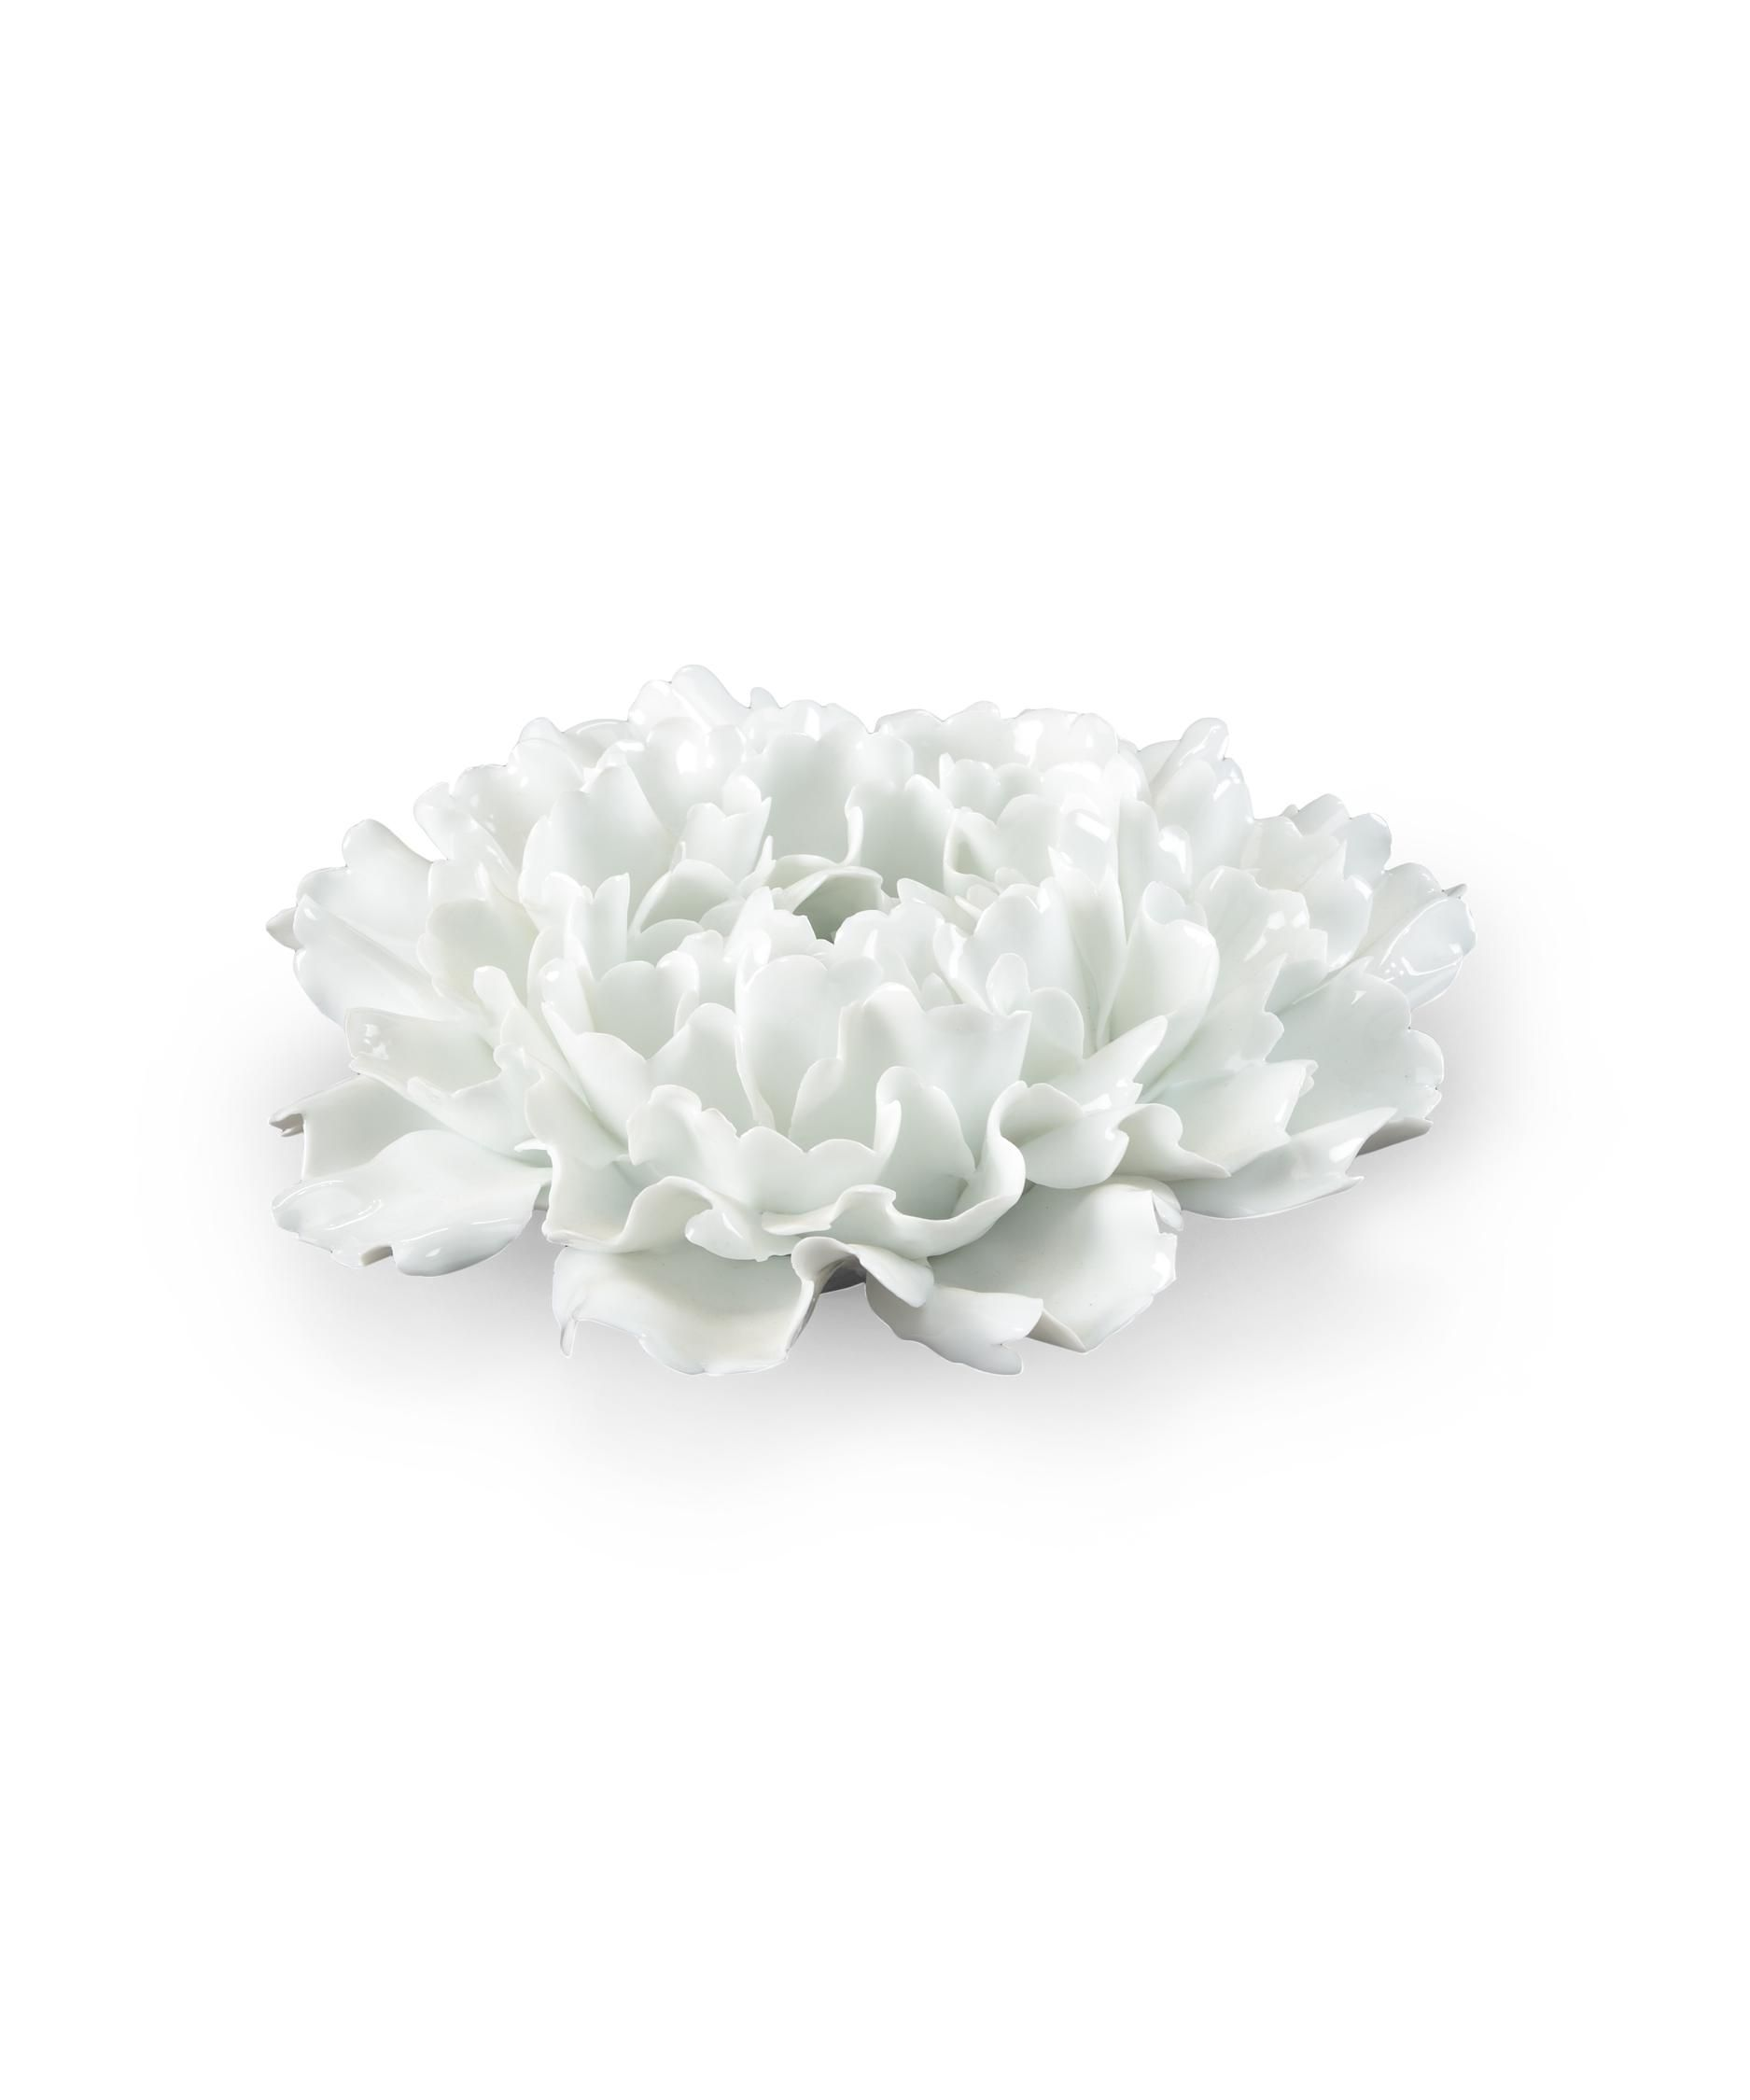 Small Lotus Flower 8 Other Table Accent In White Glaze Other Table